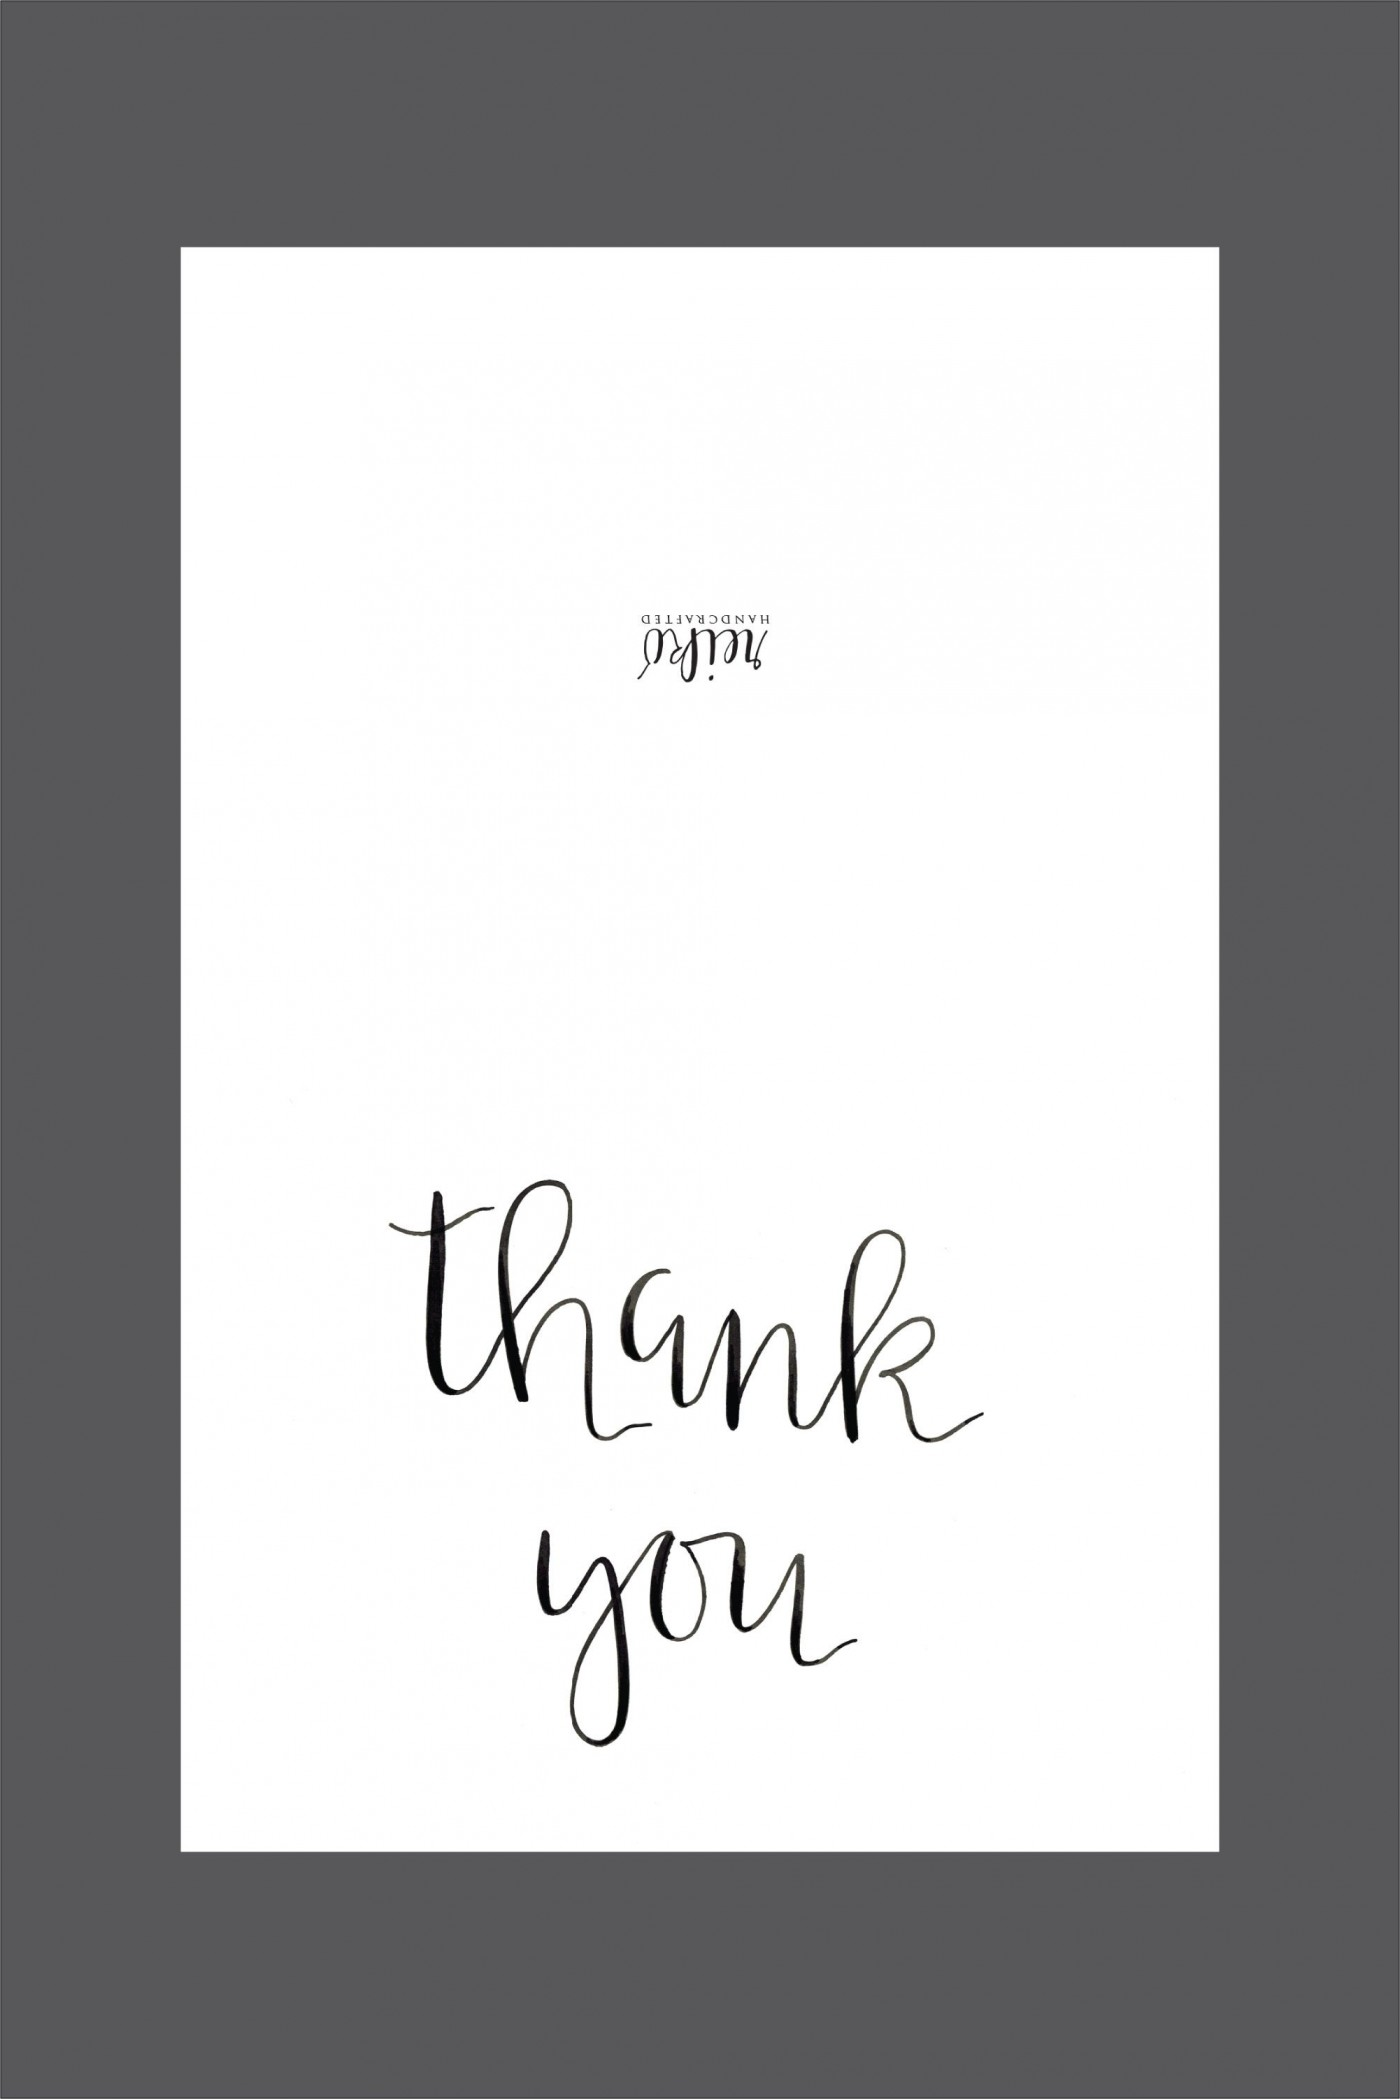 006 Shocking Thank You Note Template Free Printable Design 1400